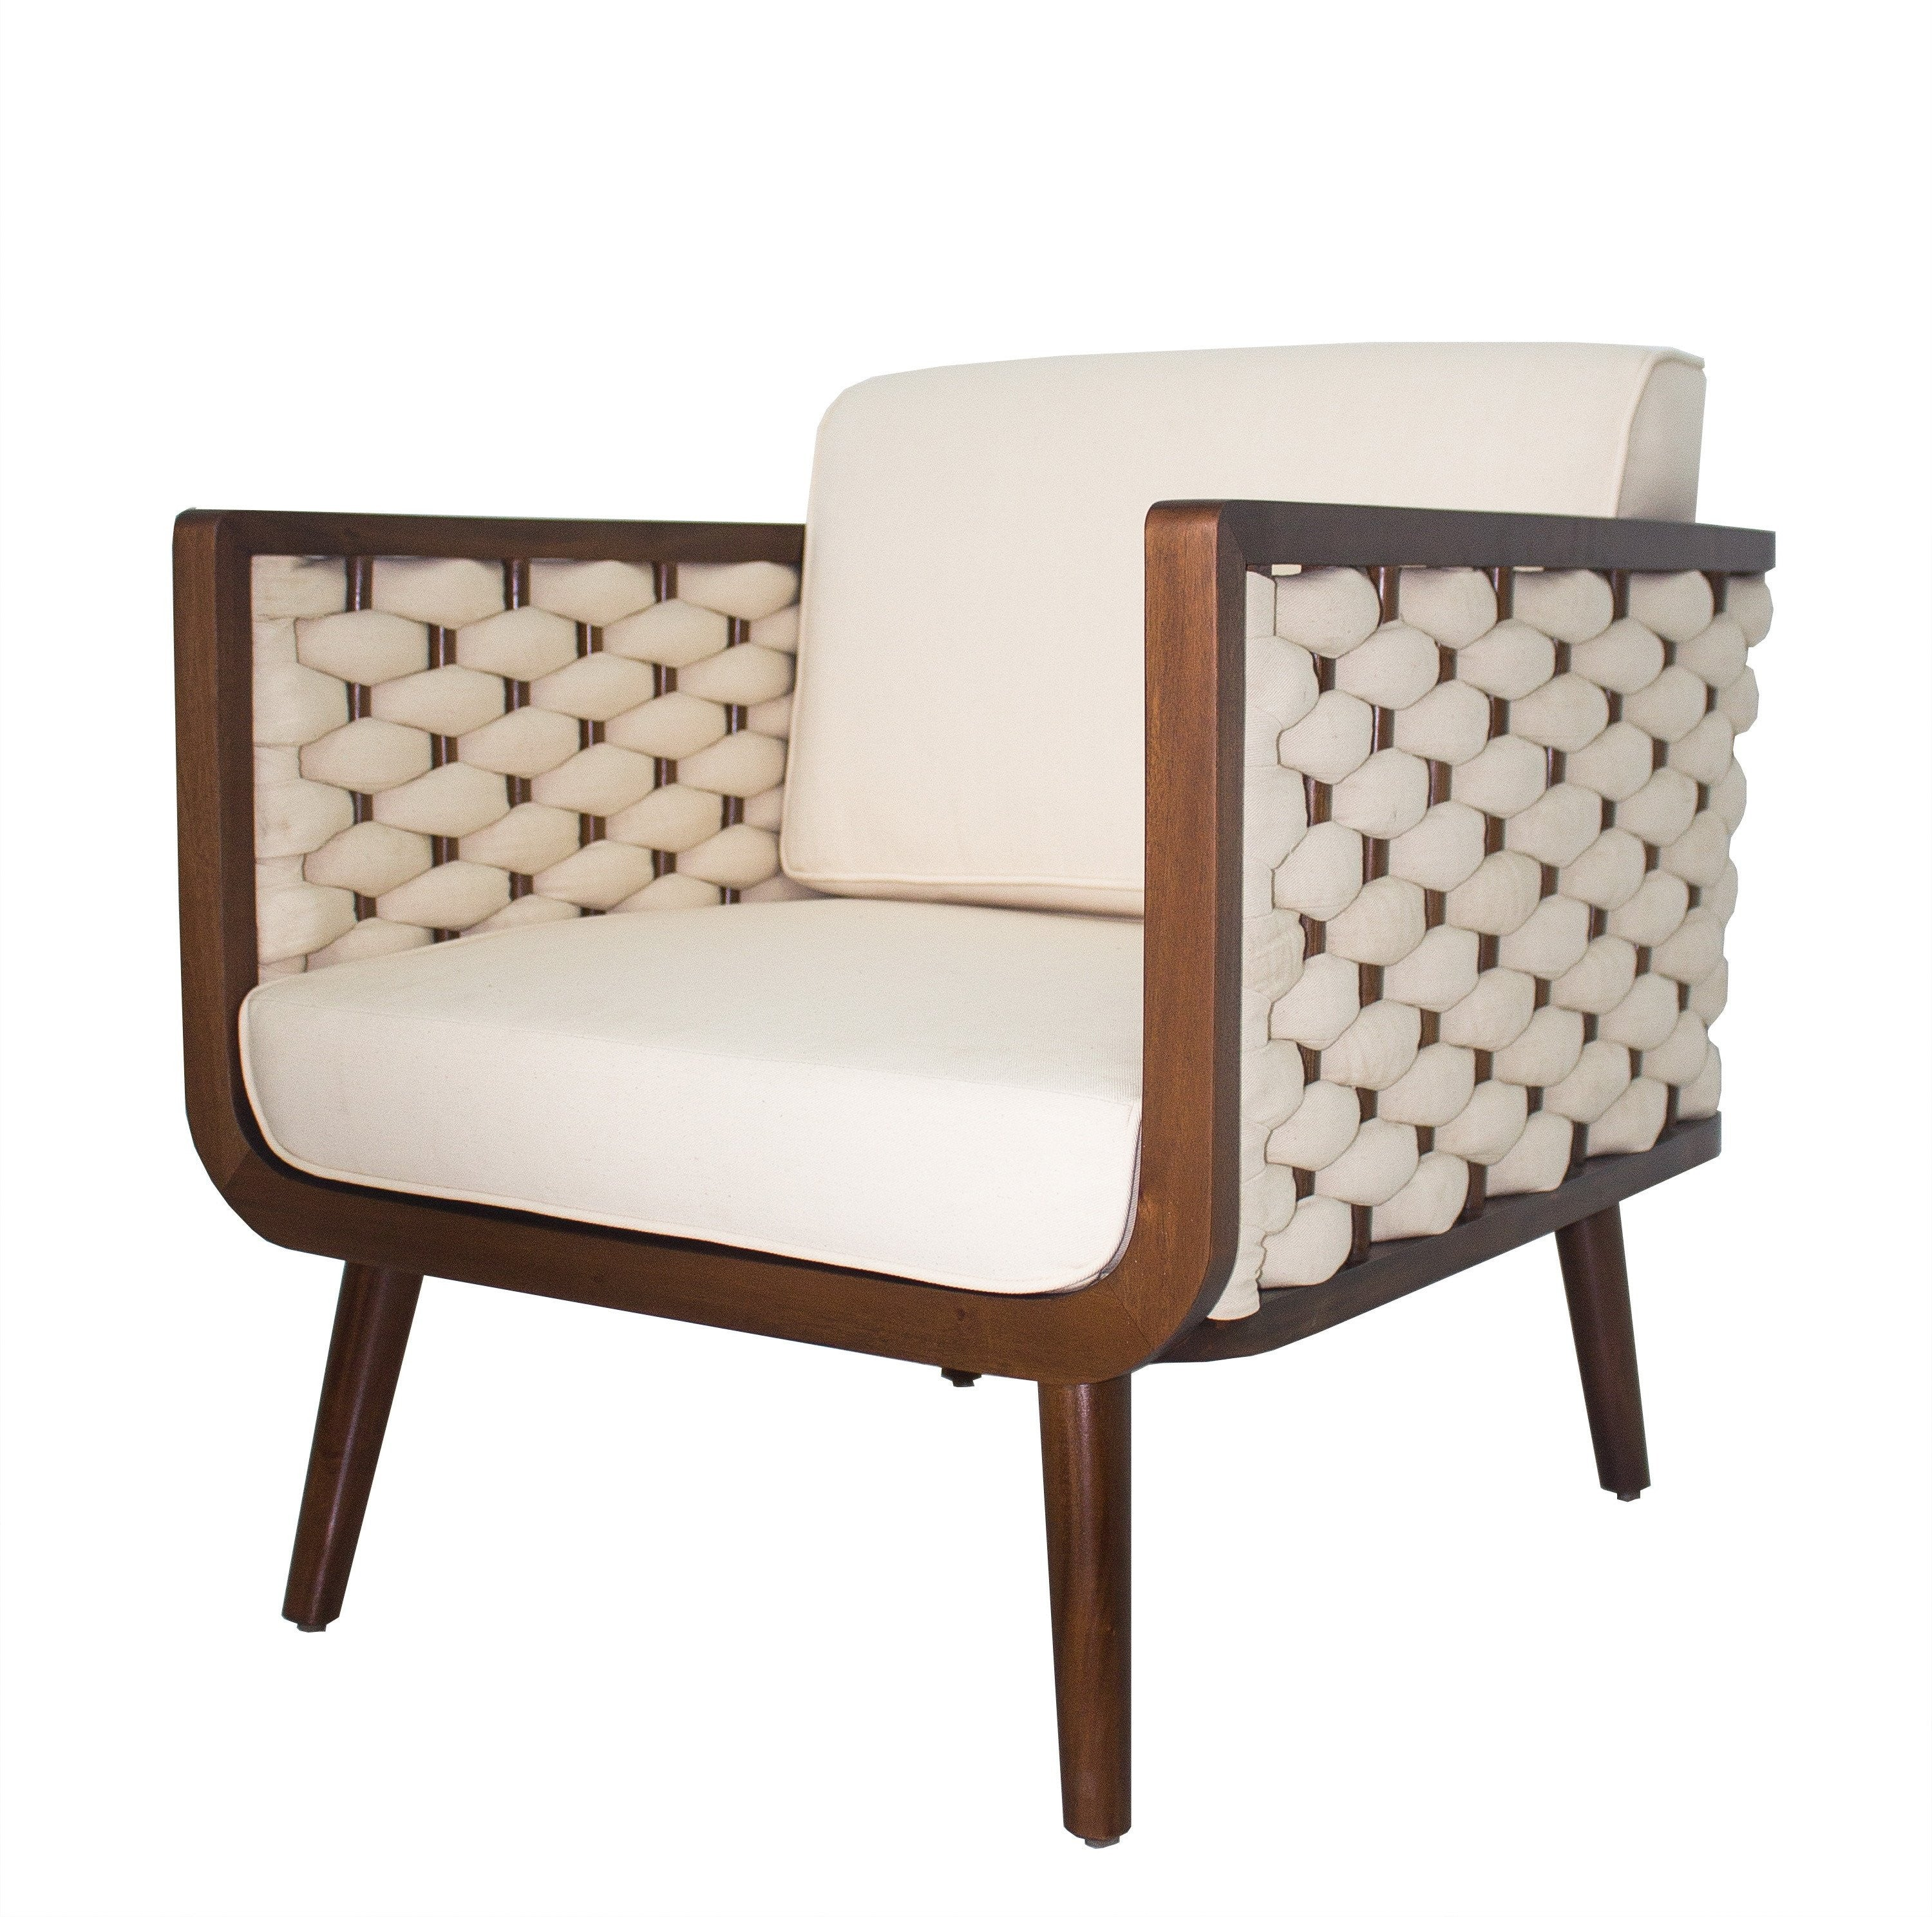 Mid Century Modern Accent Chairs Midcentury Modern Accent Chairs